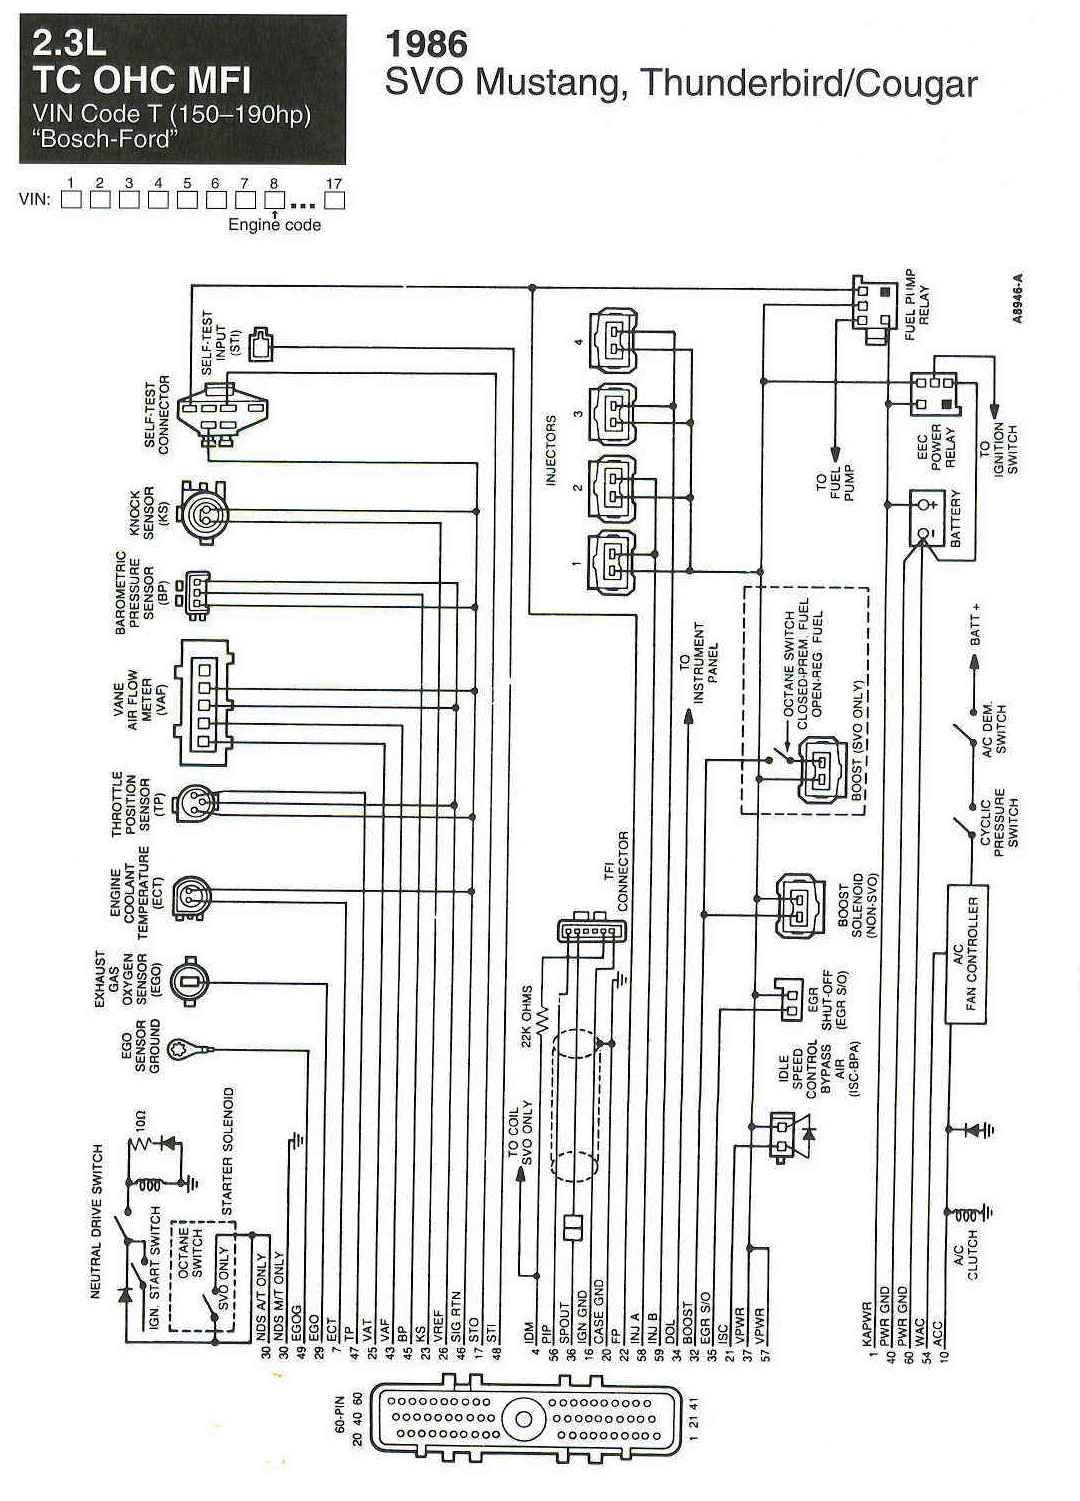 hight resolution of mustang stereo wiring harness diagram wiring diagram database 1986 mustang svo wiring diagram svo mustang wiring diagram